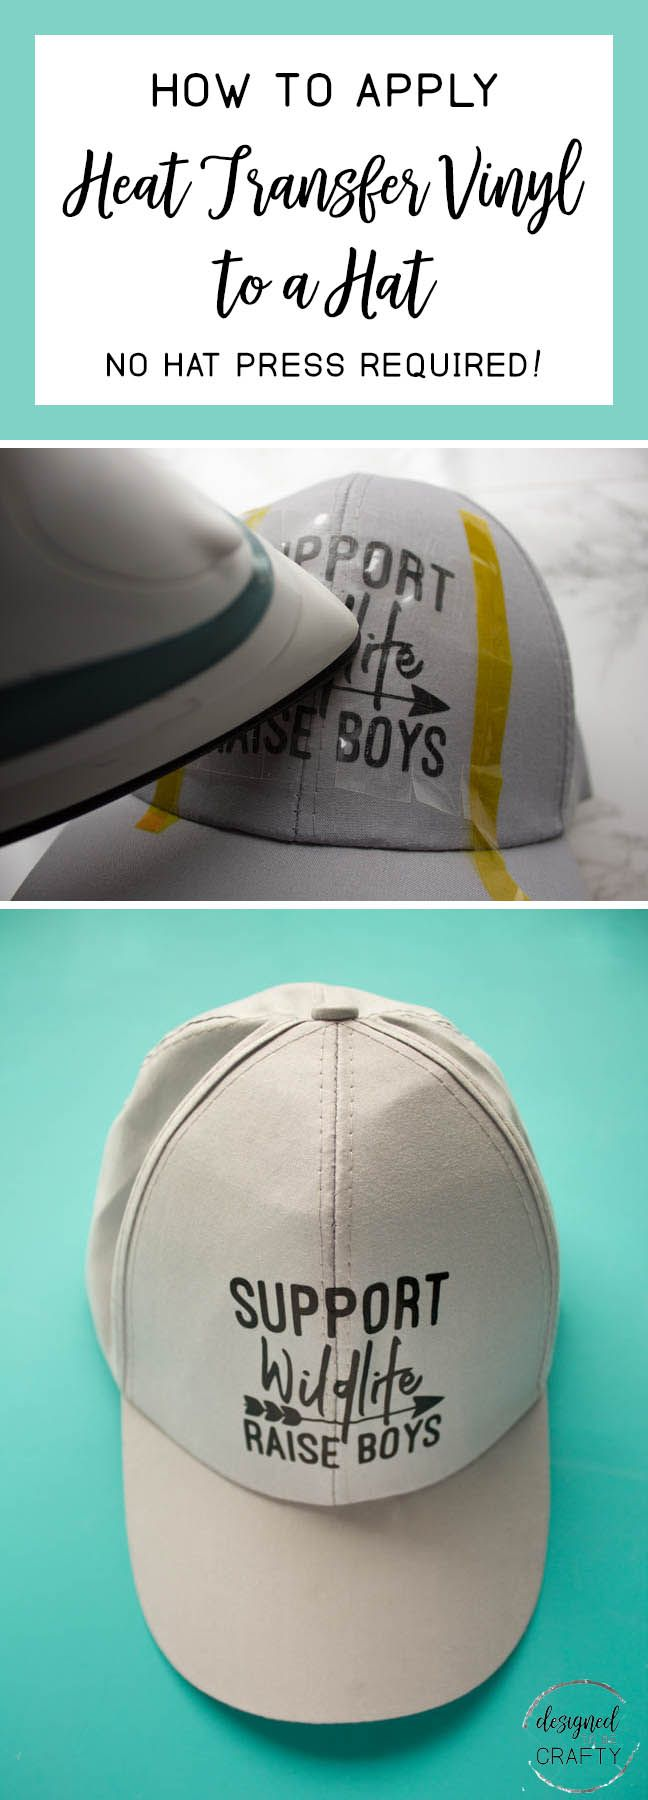 How To Apply Htv To A Hat No Hat Press Required Cricut Vinyl Hat Design Ideas Vinyl Hats